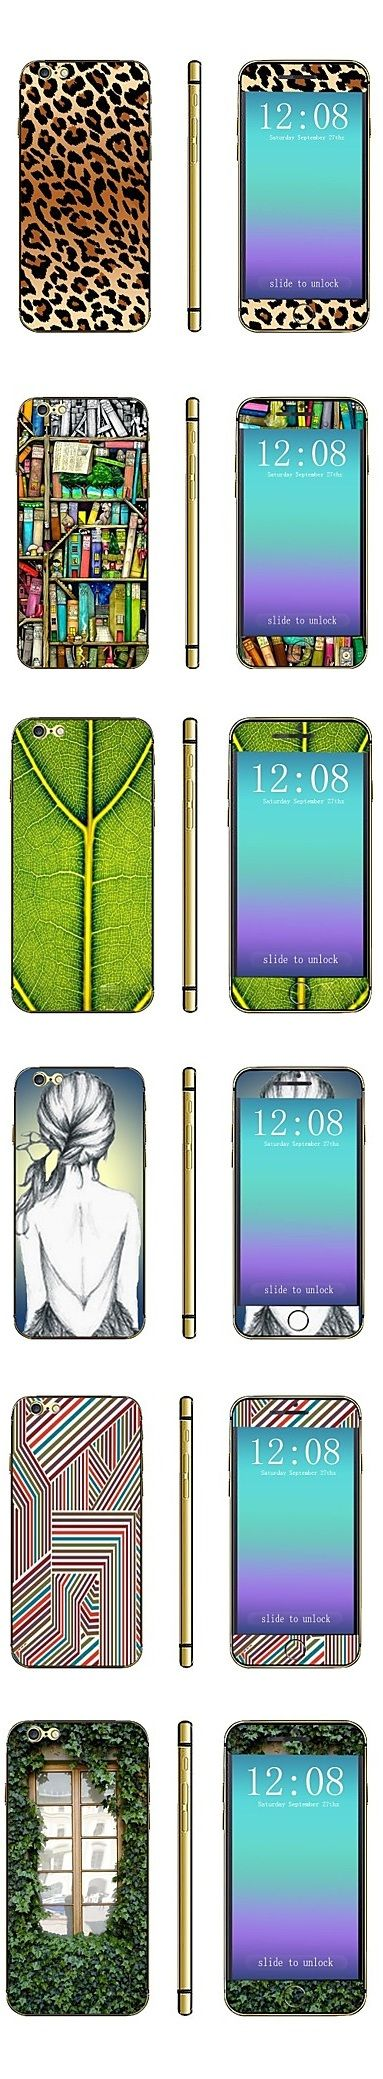 Creative skins for your iPhone 6. They do not make your phone thicker, no glue needed, easy to stick, easy to take off. Explore our collection of cool stickers!